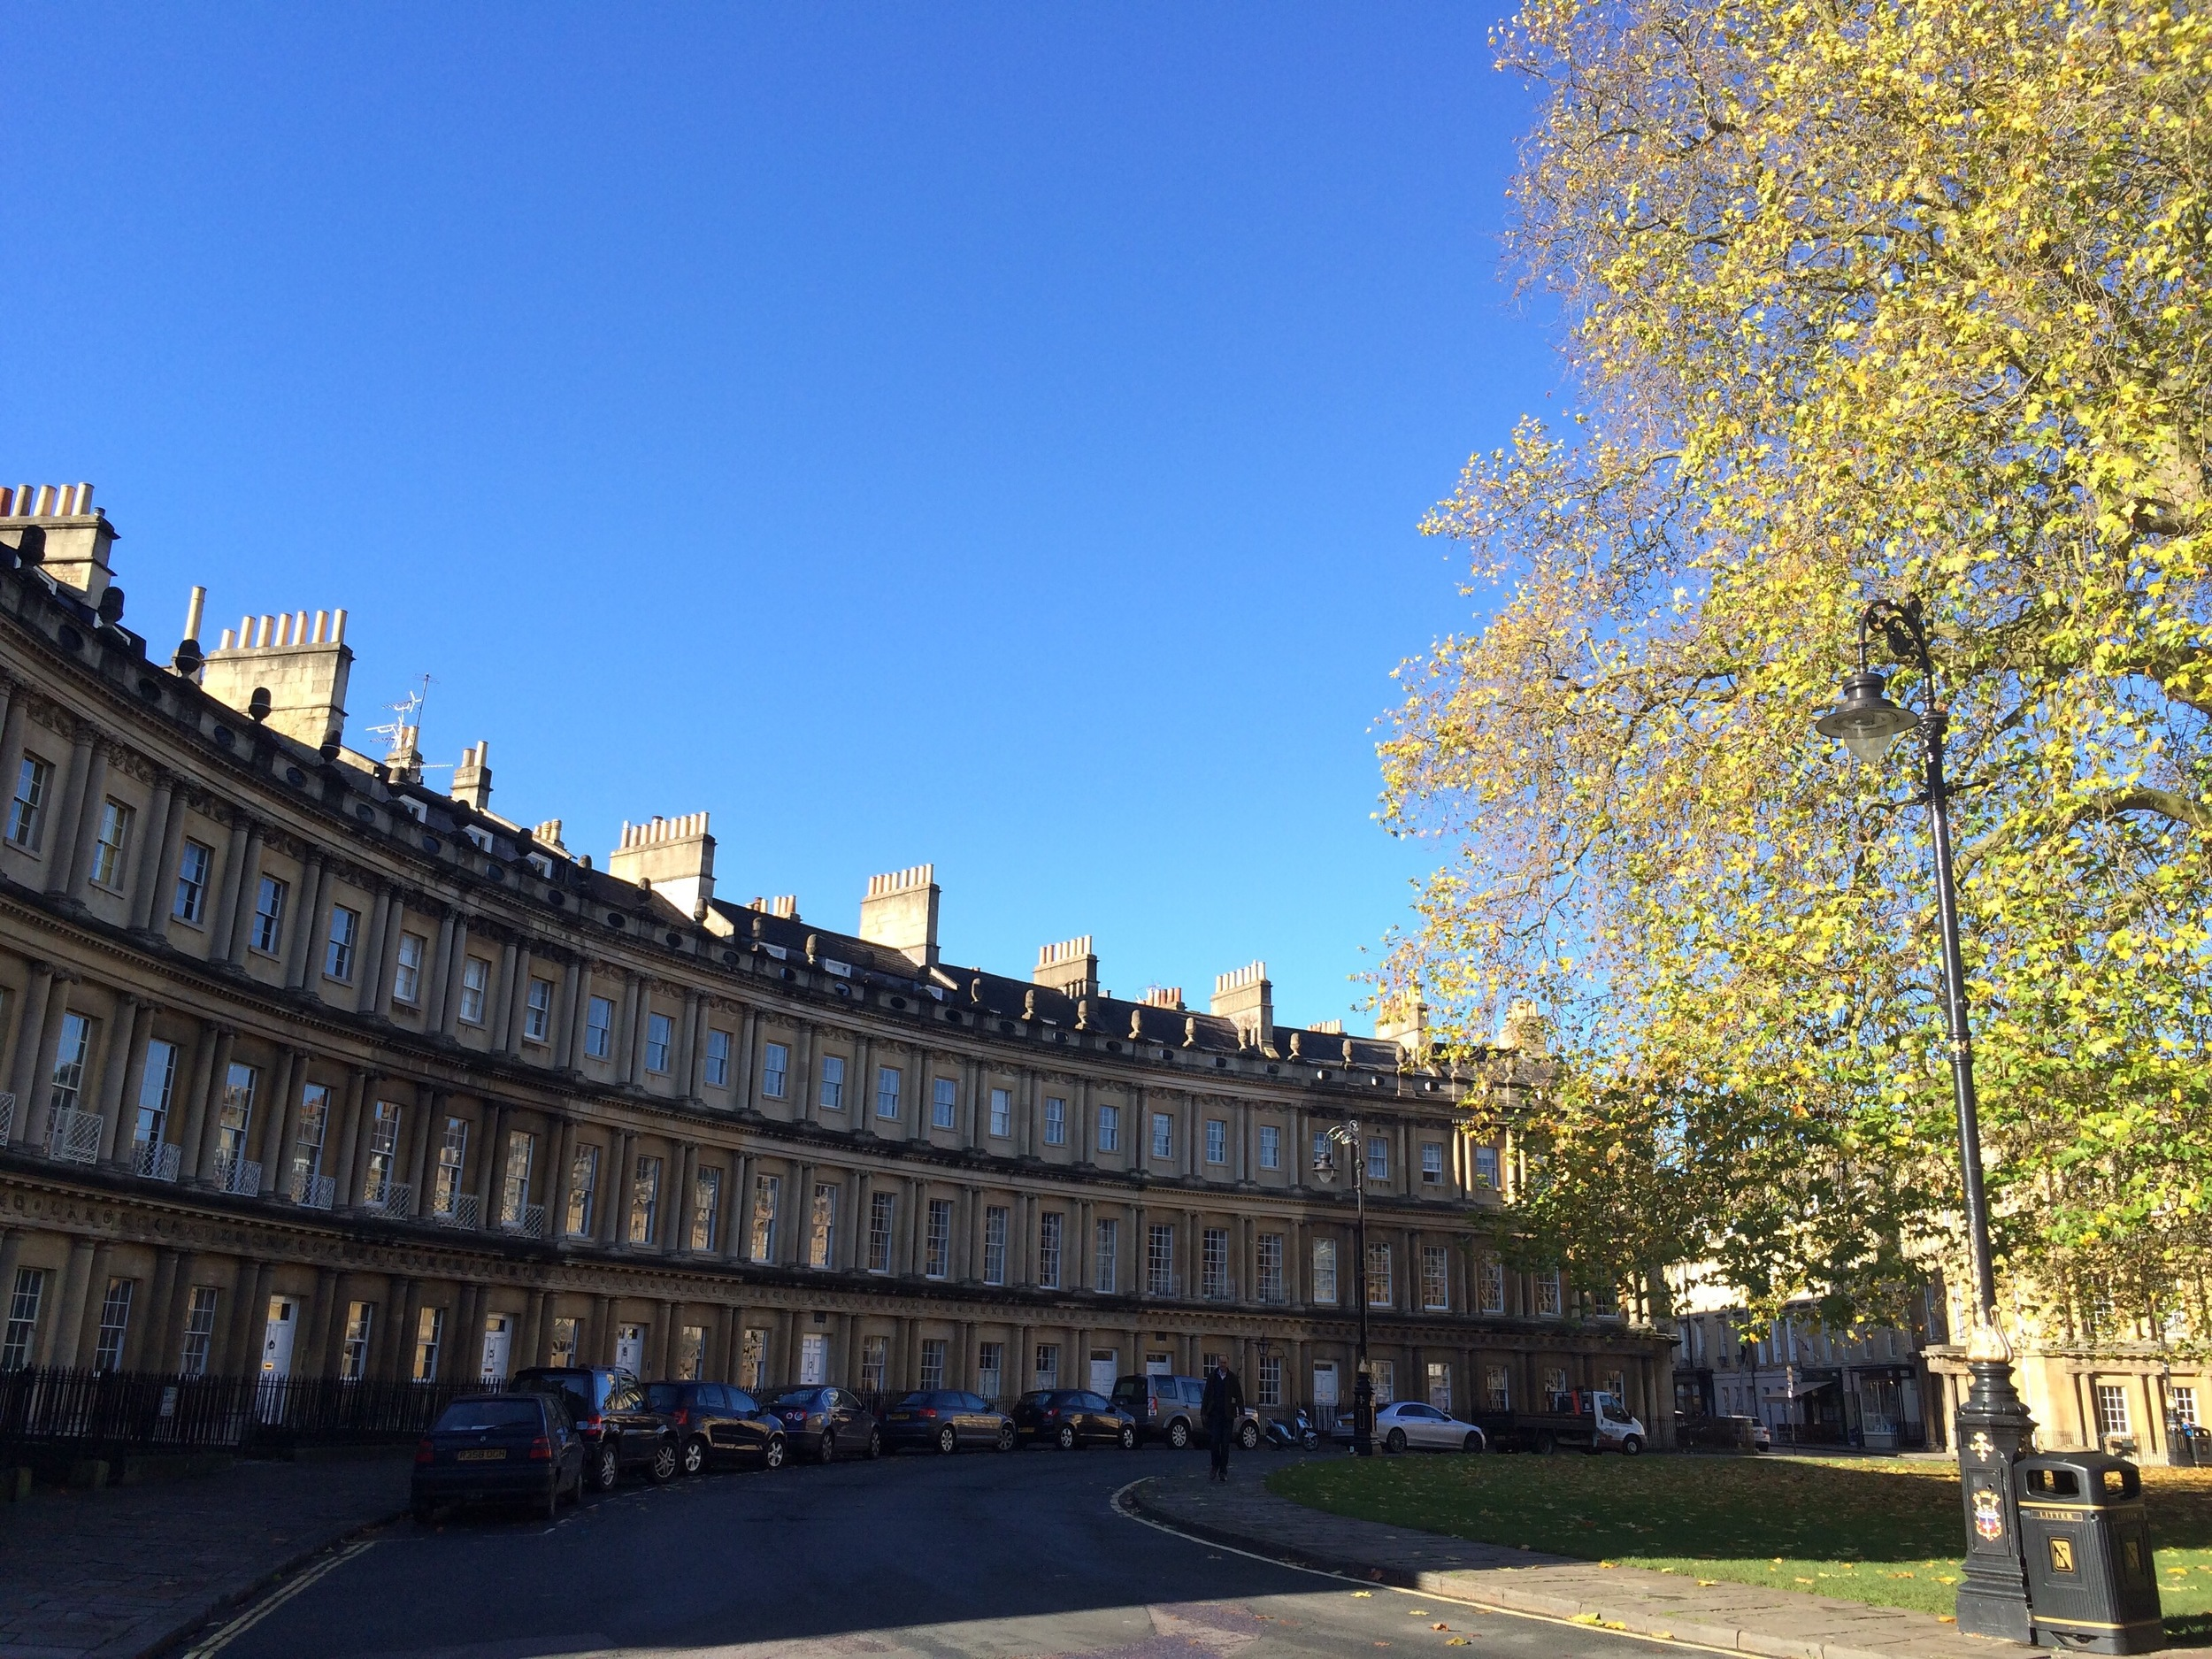 Bath is known for its Georgian architecture and natural hot springs.A proper tree-lined street with too many windows to count.